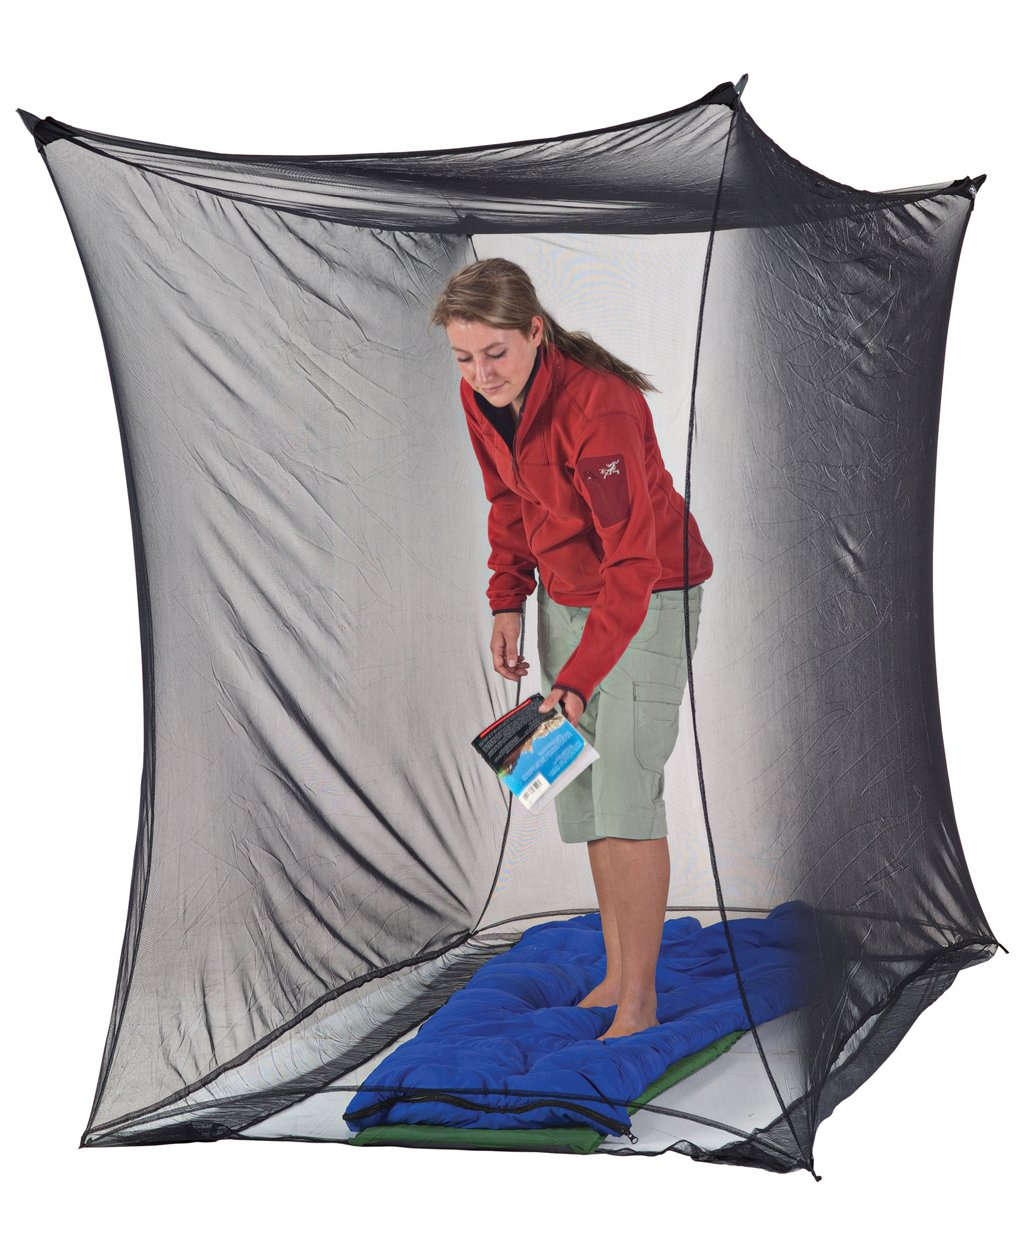 Sea to Summit Mosquito Box Net Shelter with Insect Shield